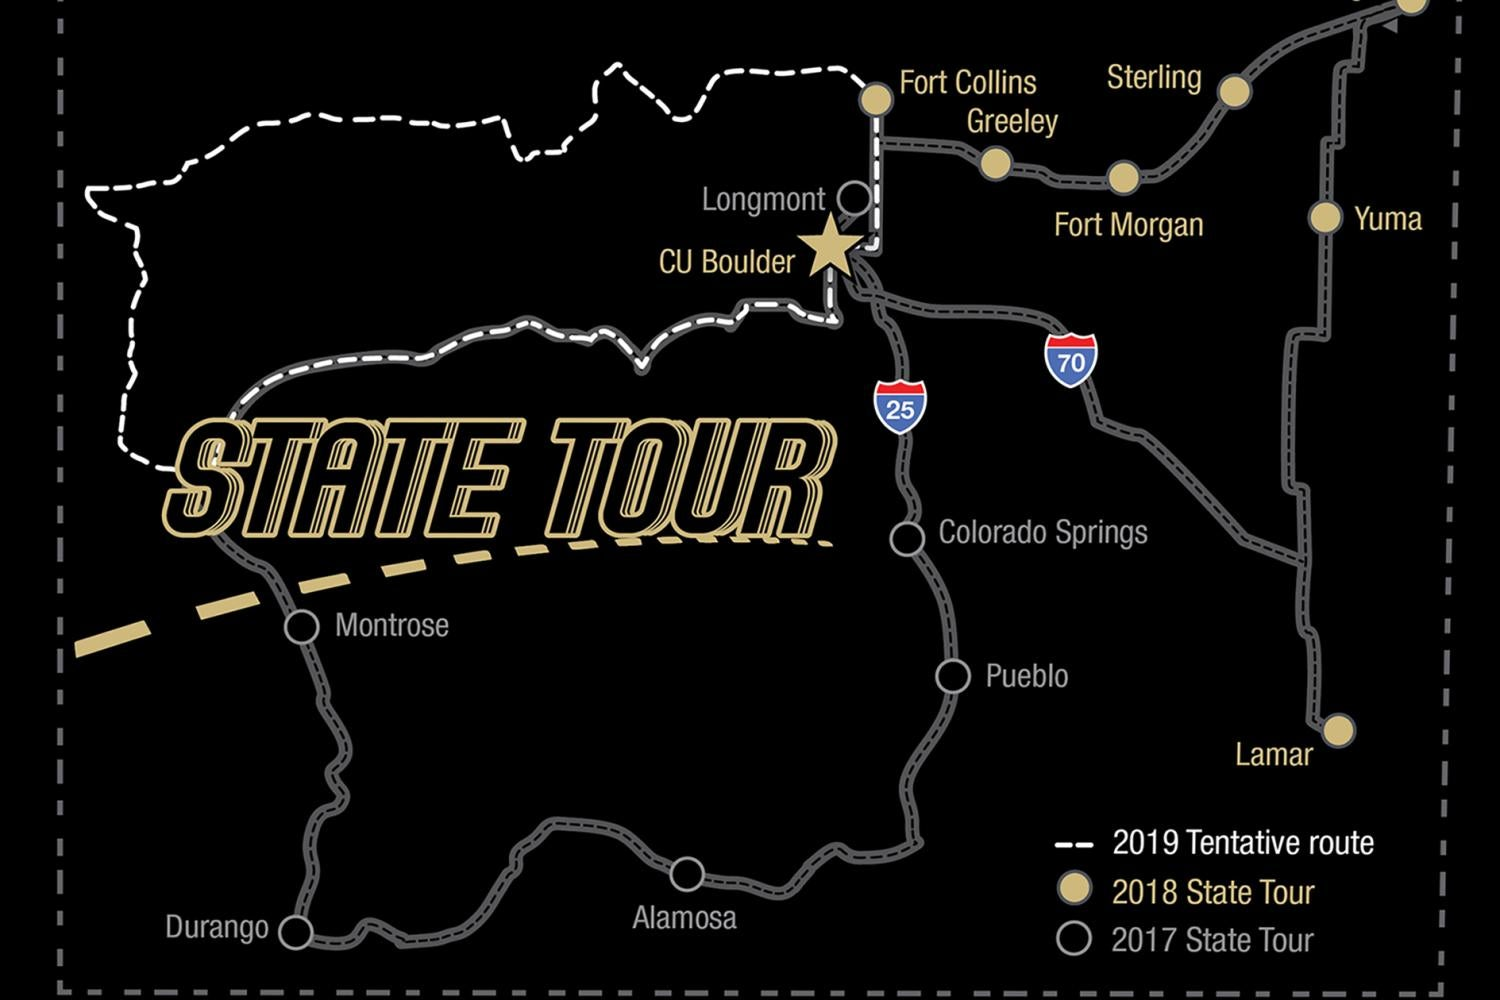 Dean's state tour map